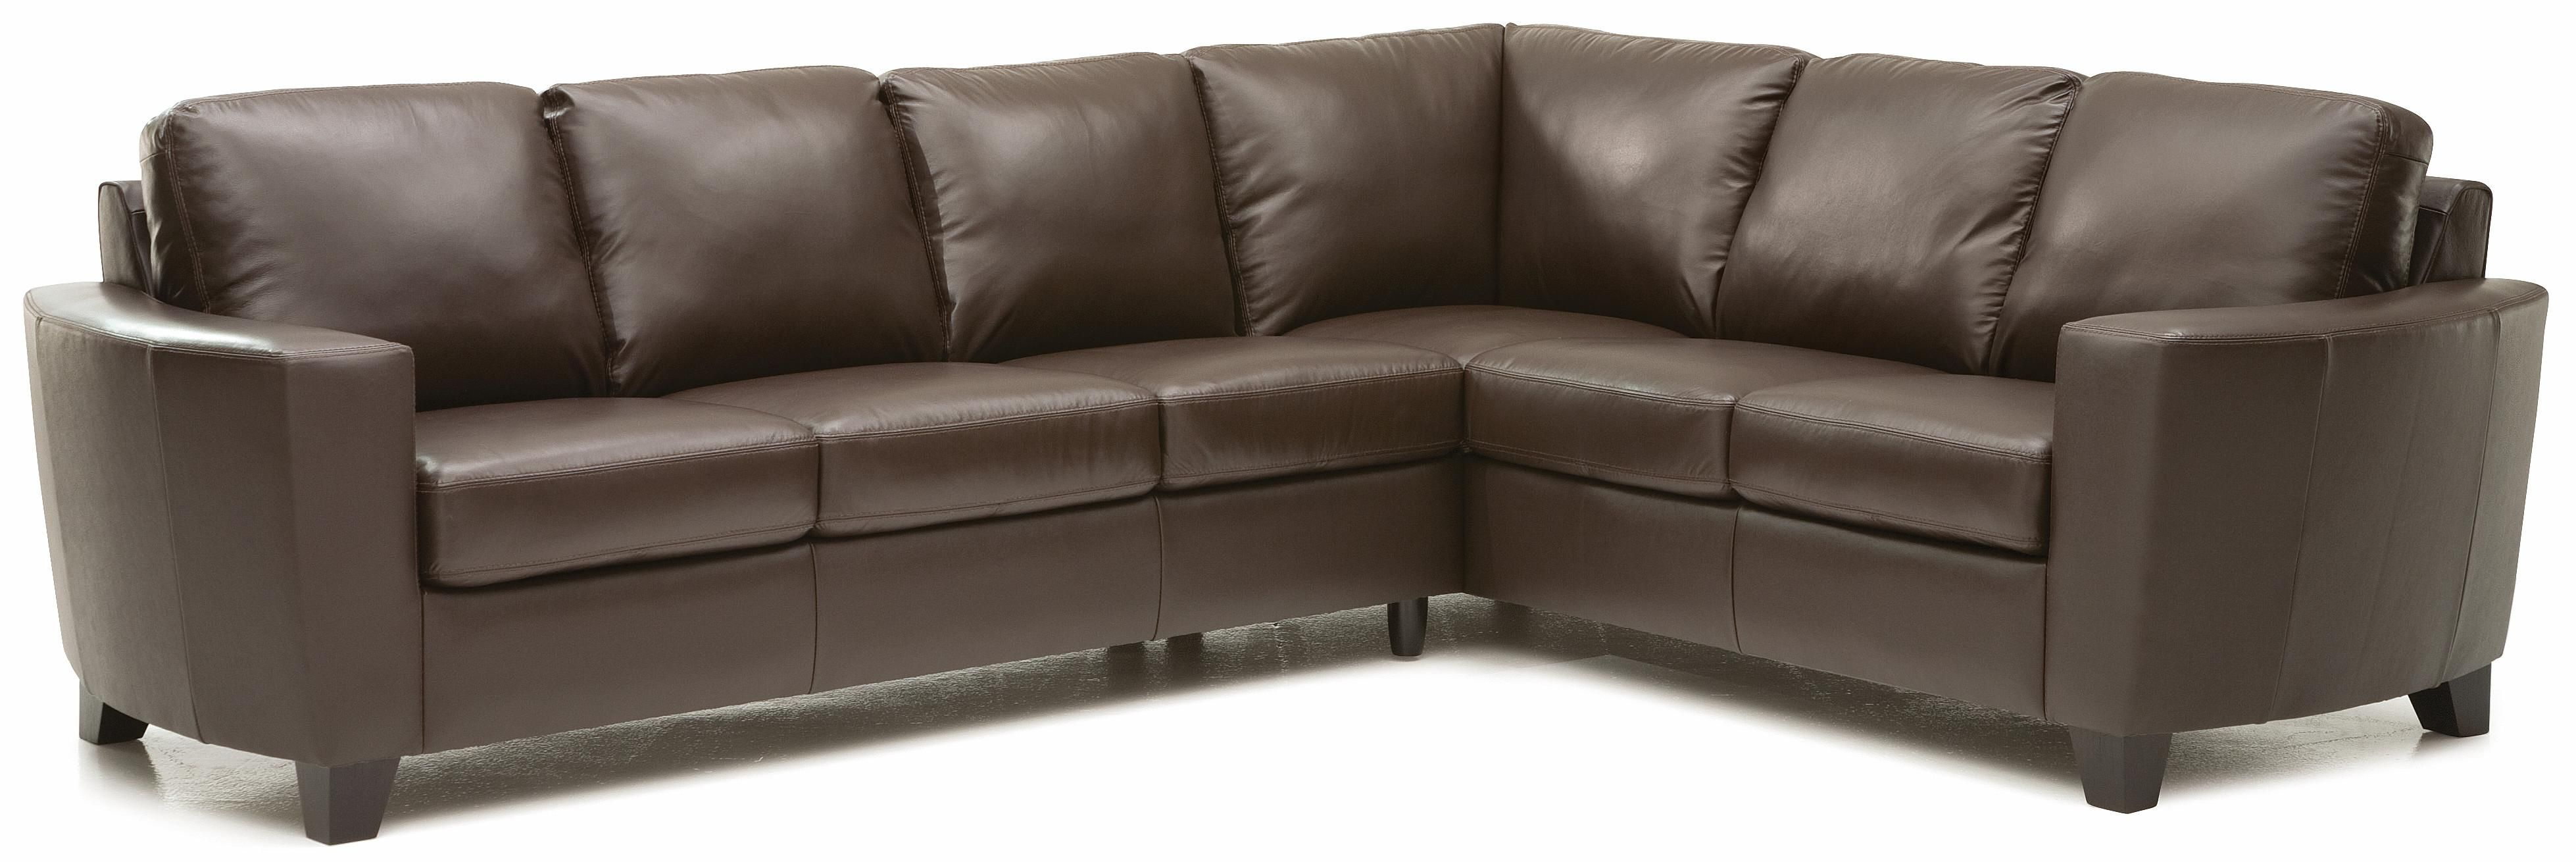 Sofa Foam Leeds Leeds Contemporary 2 Piece Sectional With Laf Sofa By Palliser